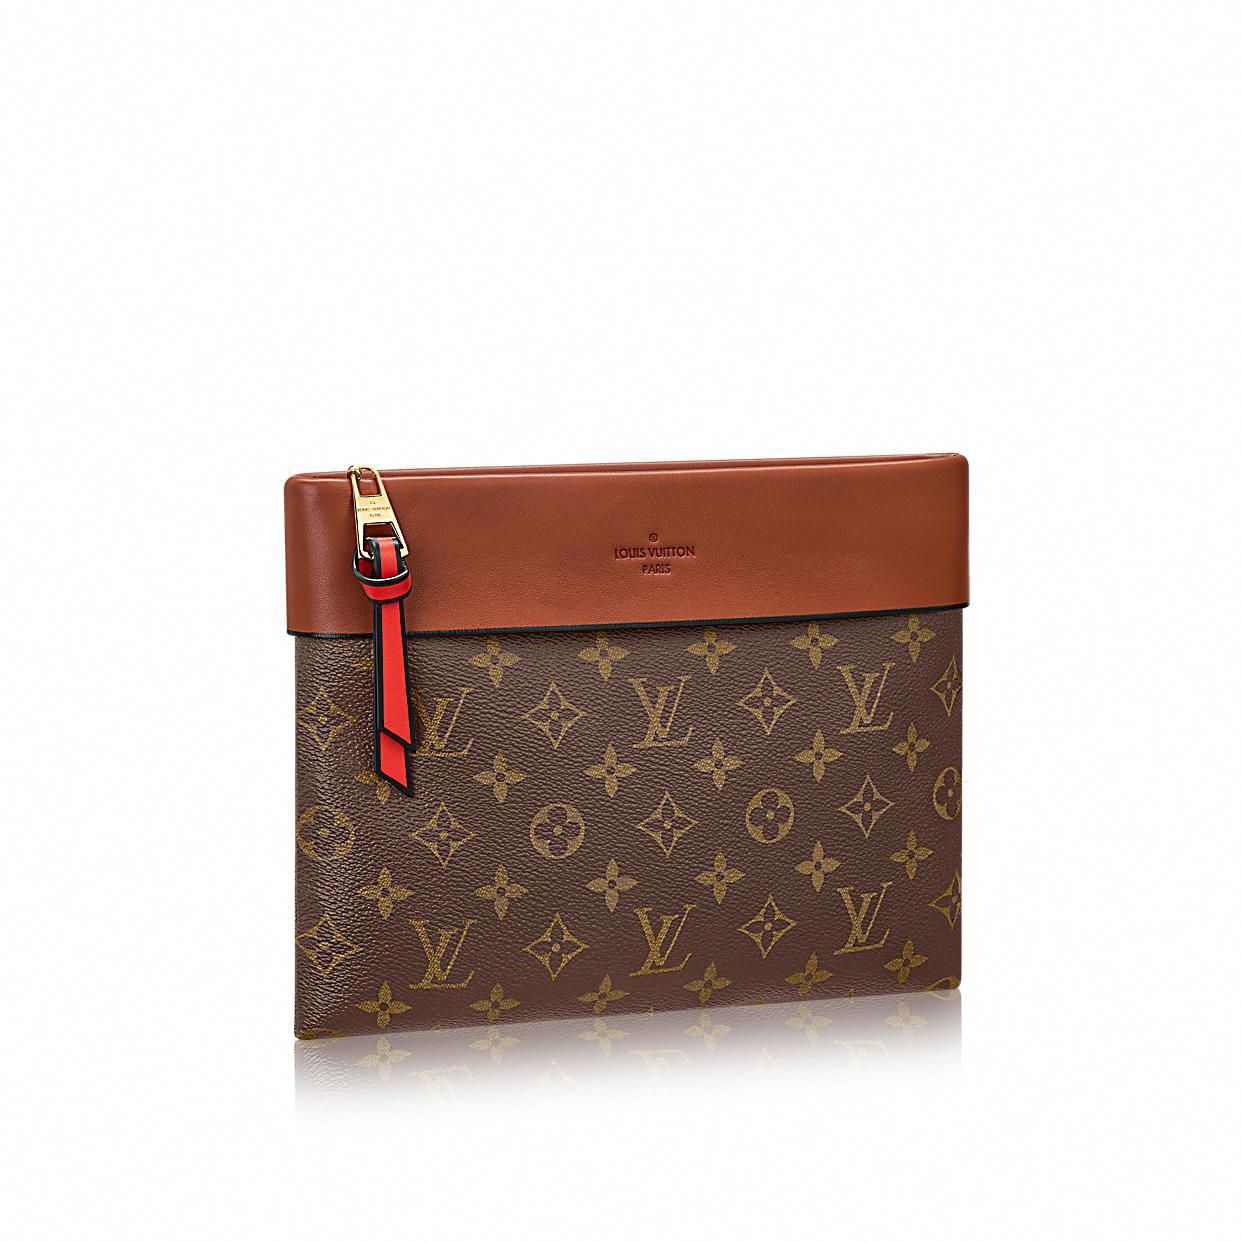 4899c21ab604 POCHETTE TUILERIES Monogram in Women s Small Leather Goods Wallets  collections by Louis Vuitton  Louisvuittonhandbags